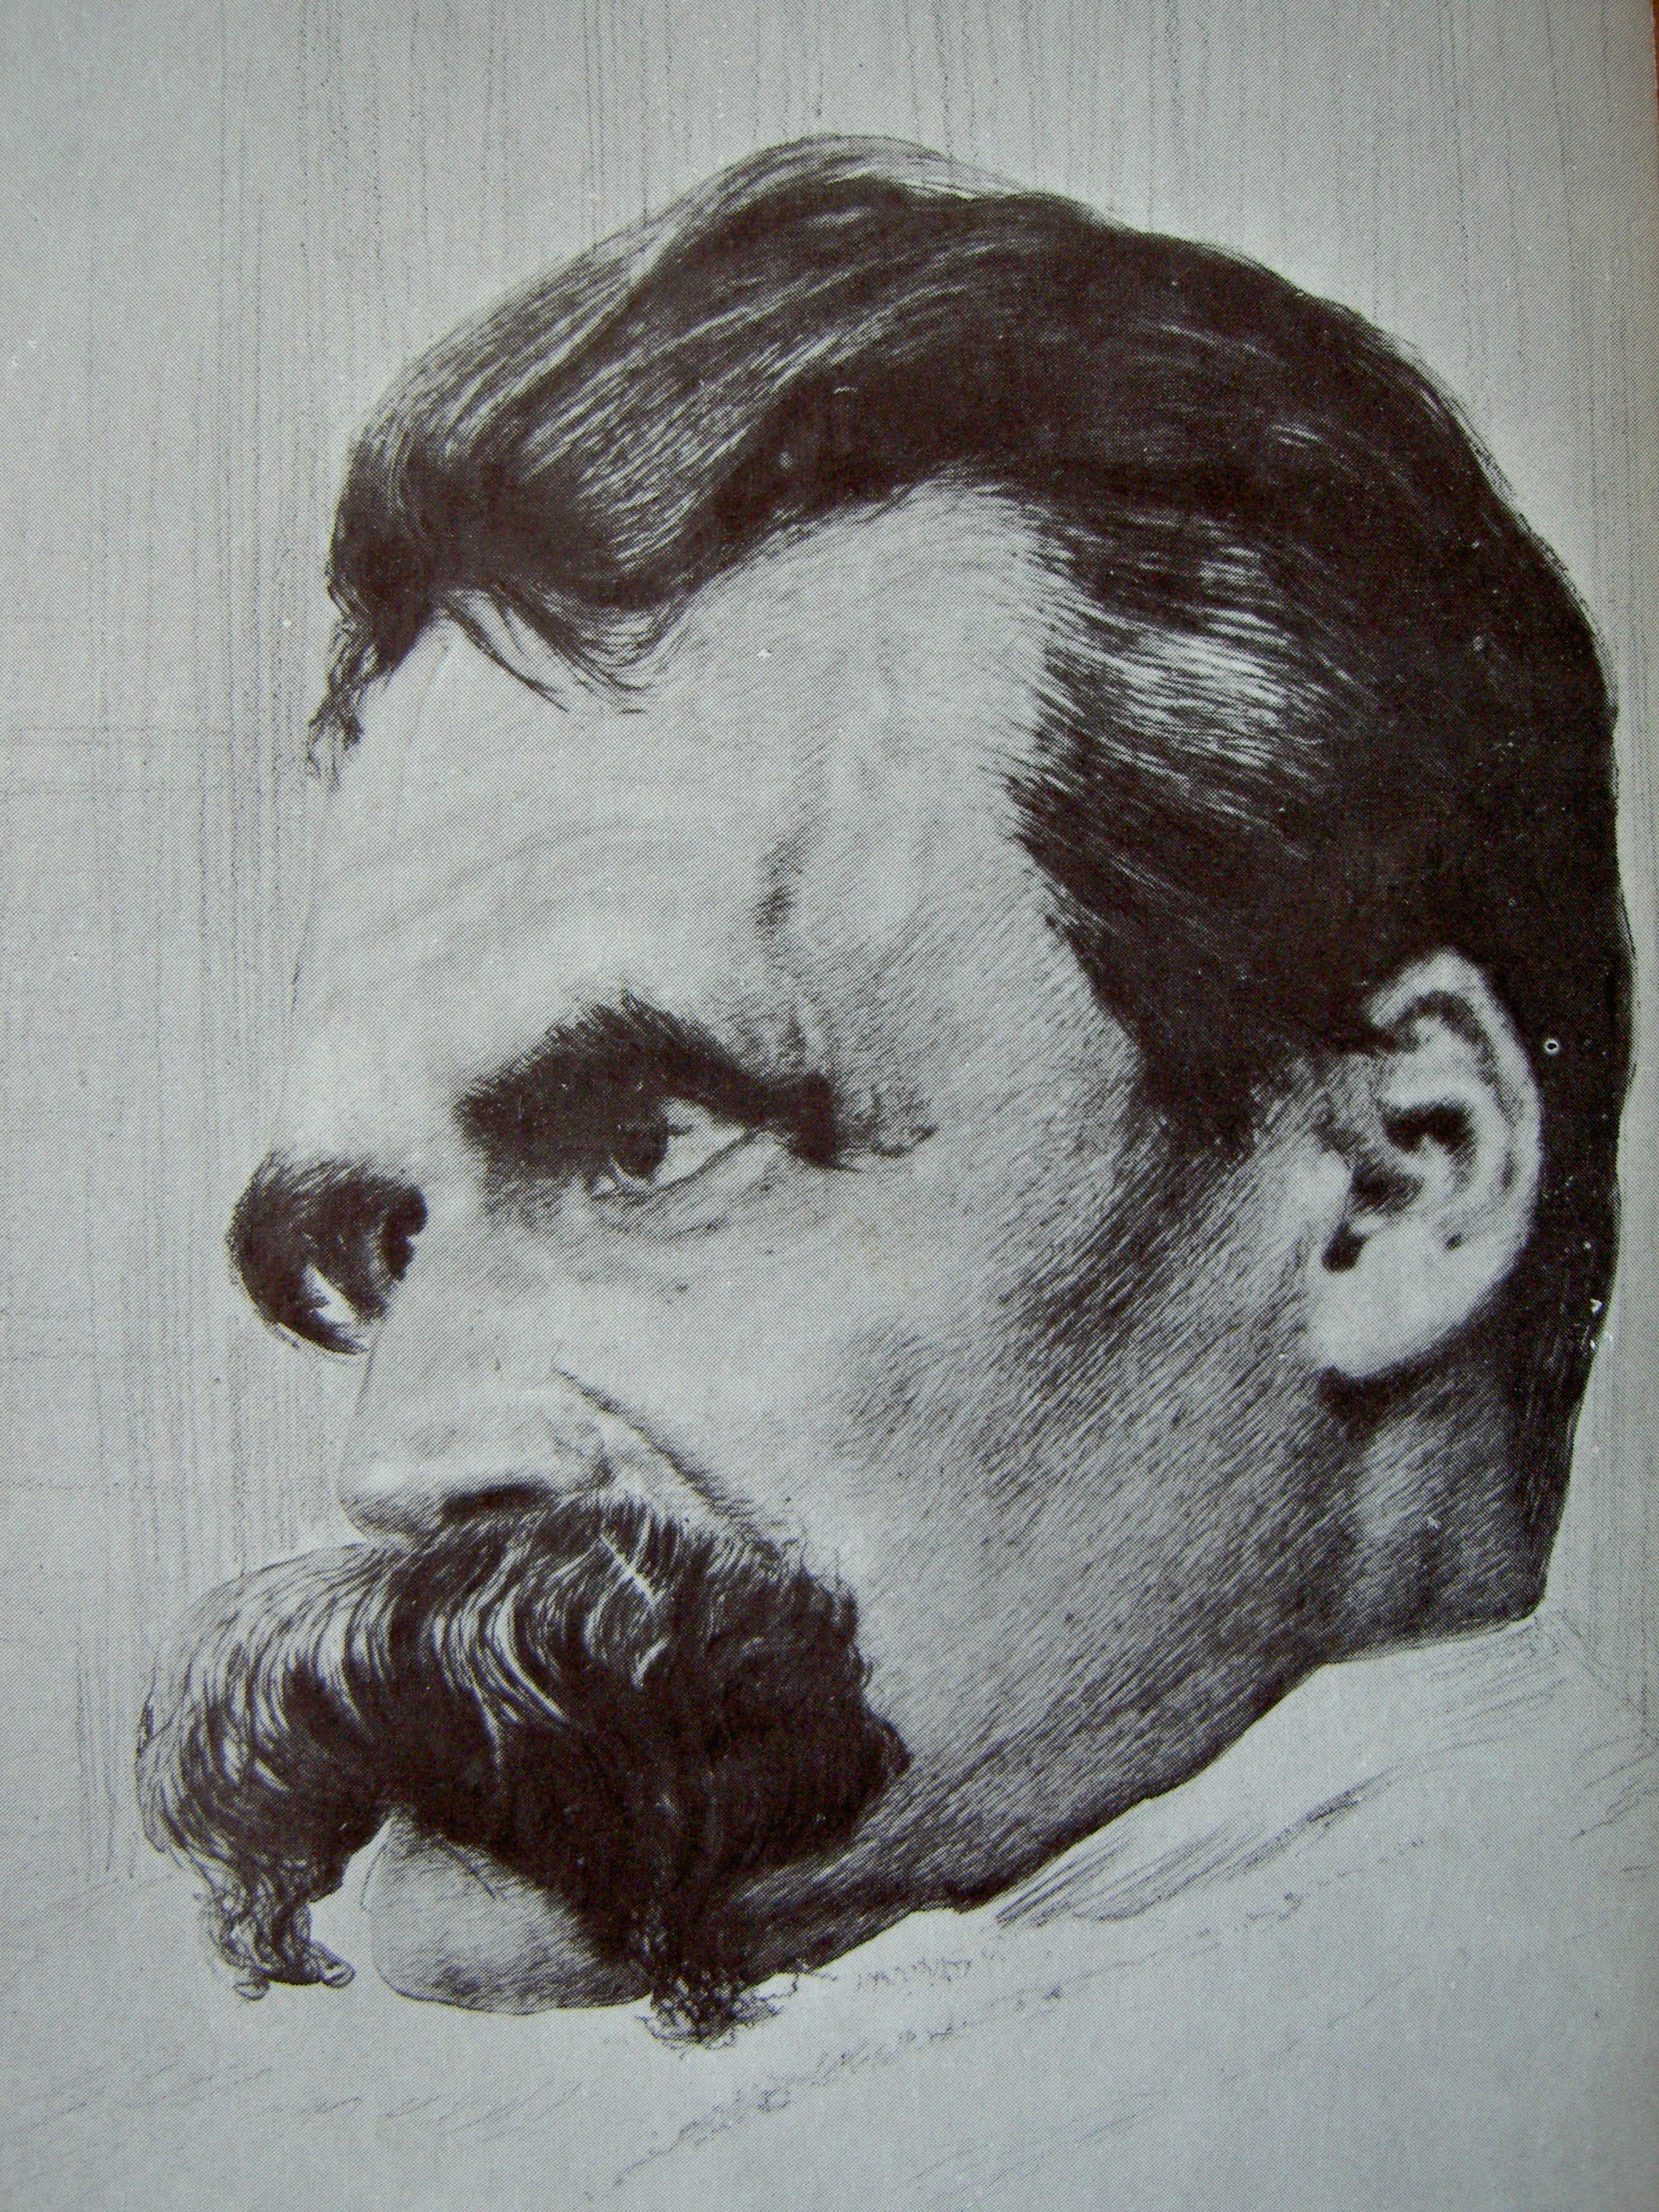 upload.wikimedia.org/wikipedia/commons/d/dd/Friedrich_Nietzsche_drawn_by_Hans_Olde.jpg